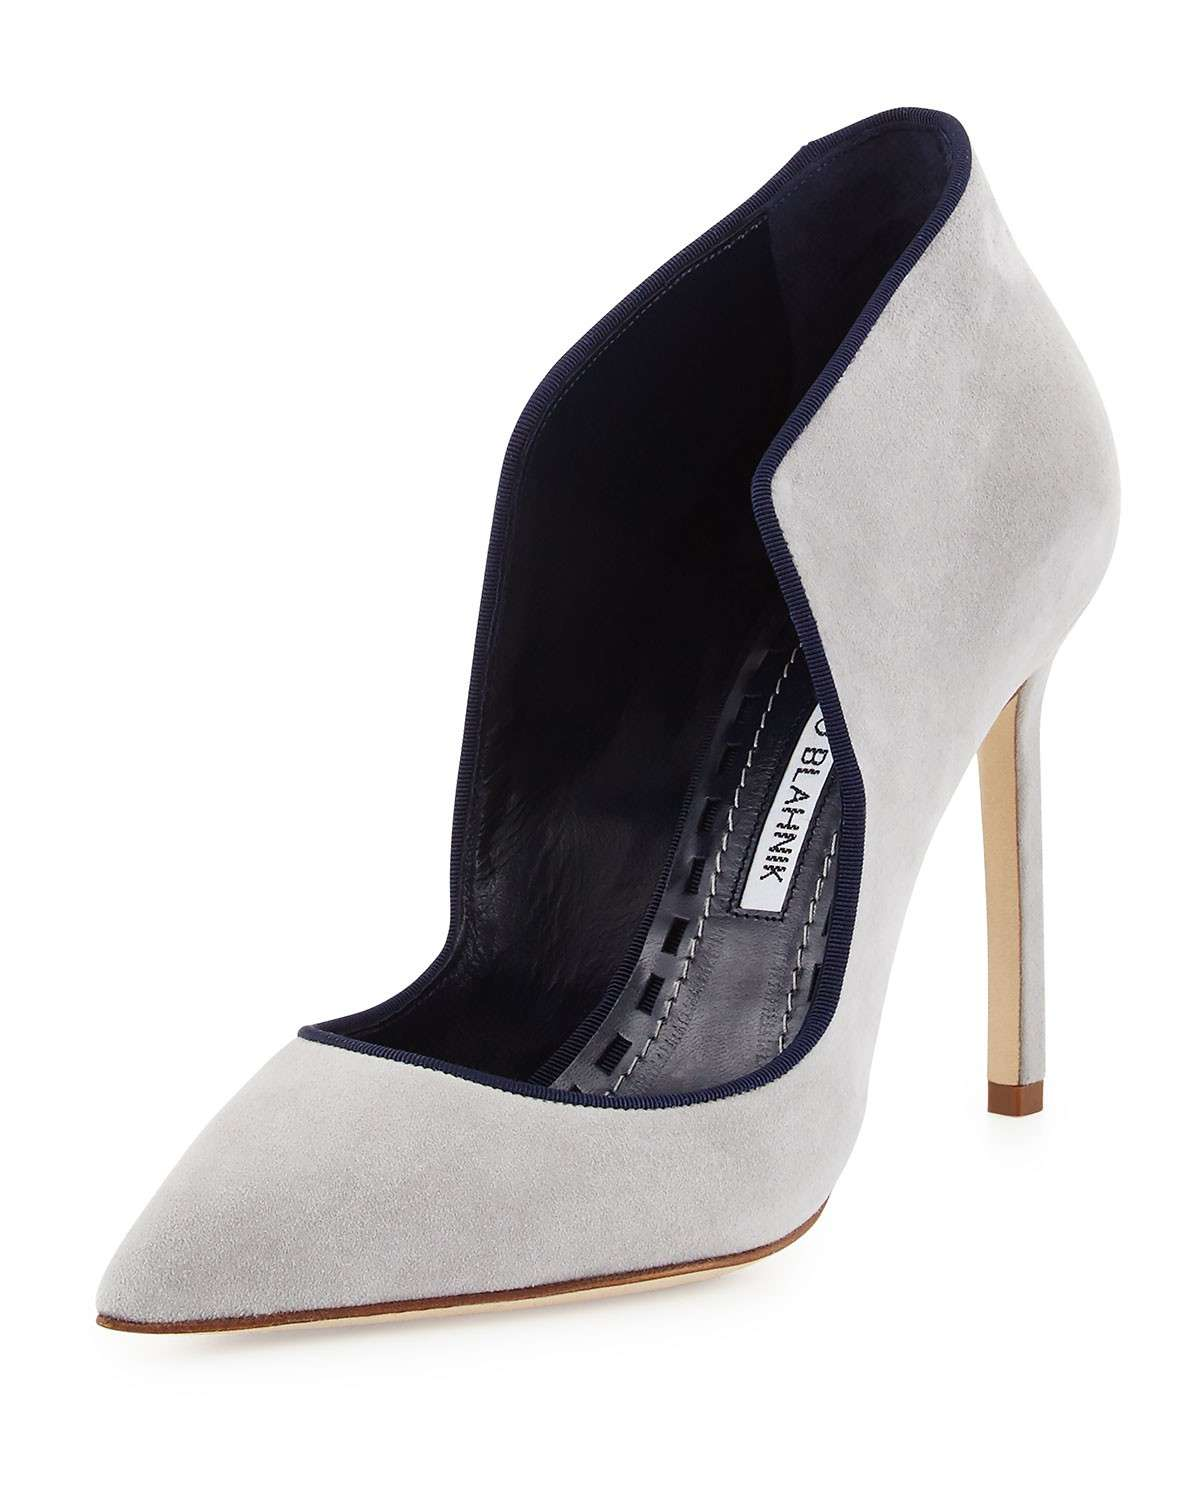 Pumps accollate Espedal